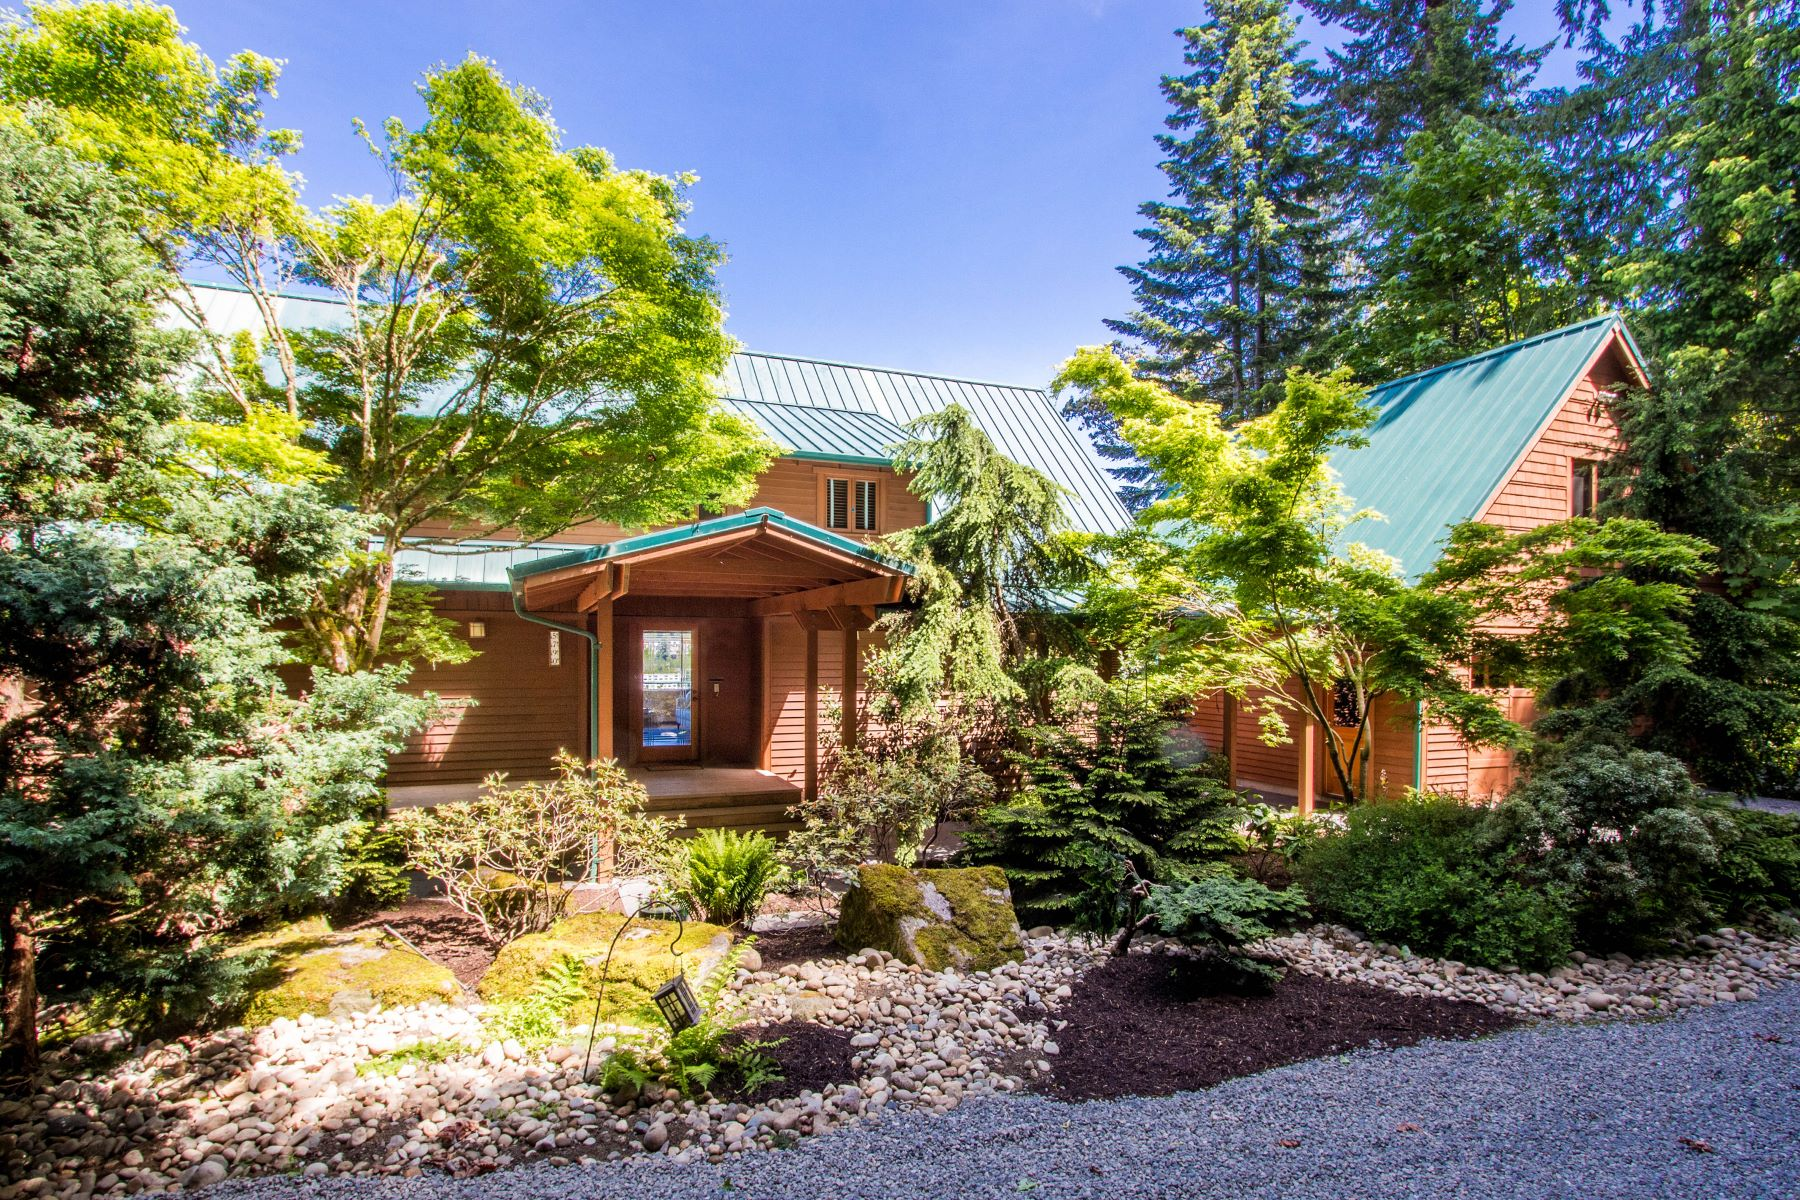 Single Family Homes for Sale at 5790 Packard Lane NE, Bainbridge Island, WA 98110 5790 Packard Lane NE Bainbridge Island, Washington 98110 United States